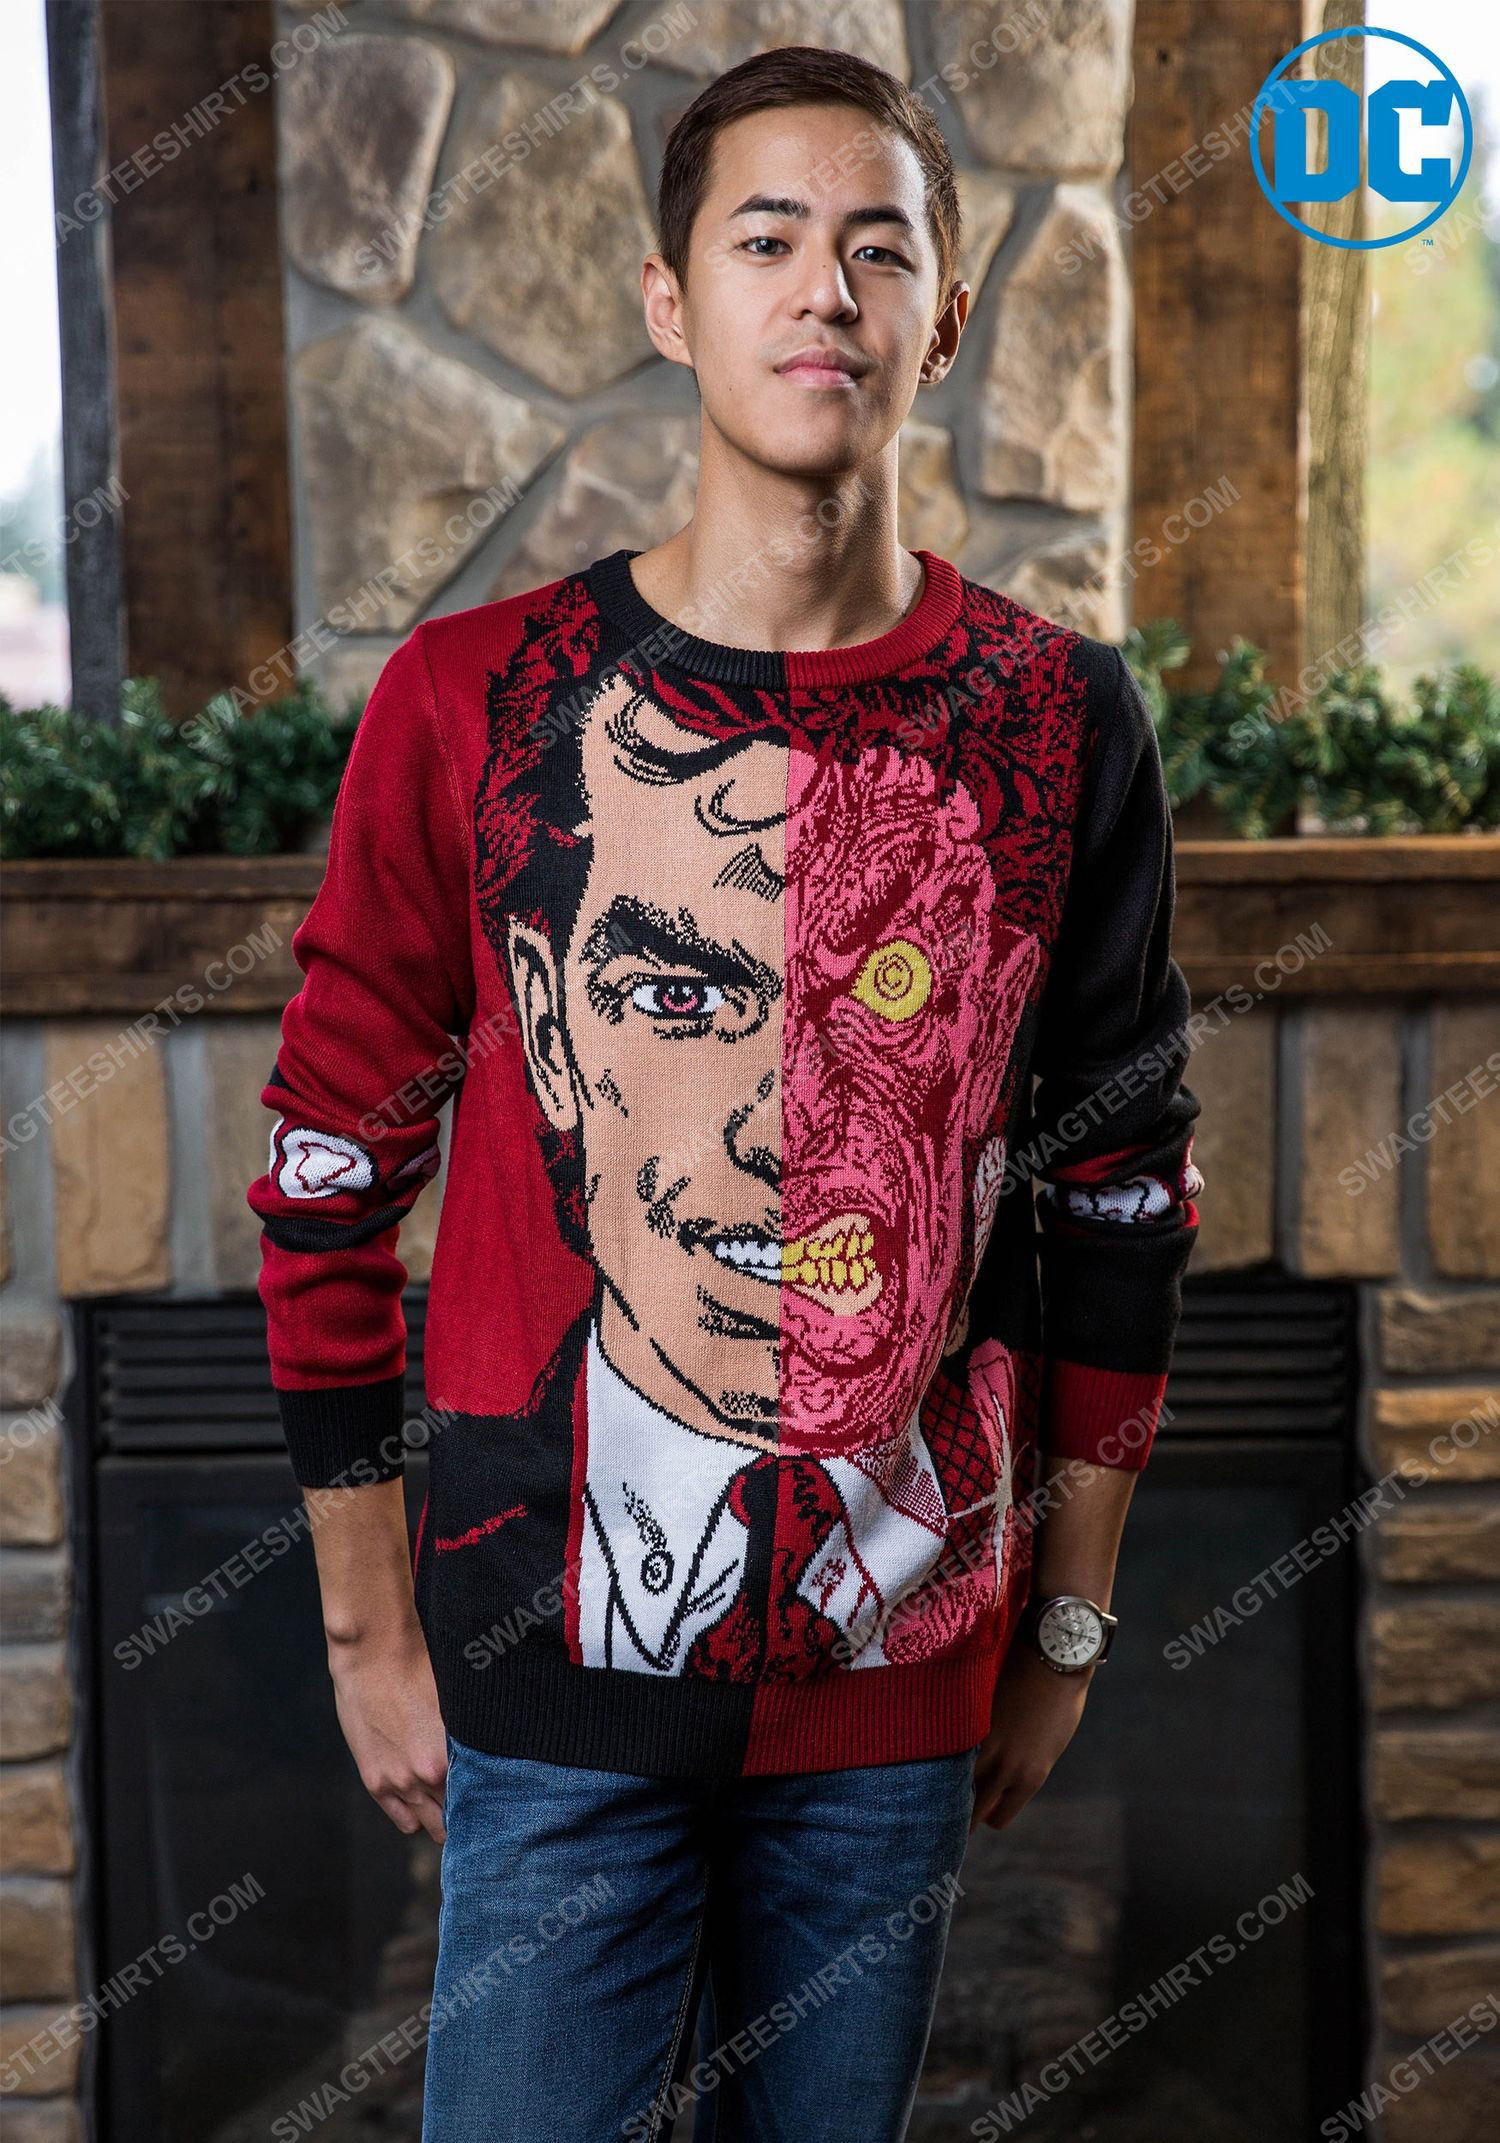 Christmas holiday batman two-face full print ugly christmas sweater 1